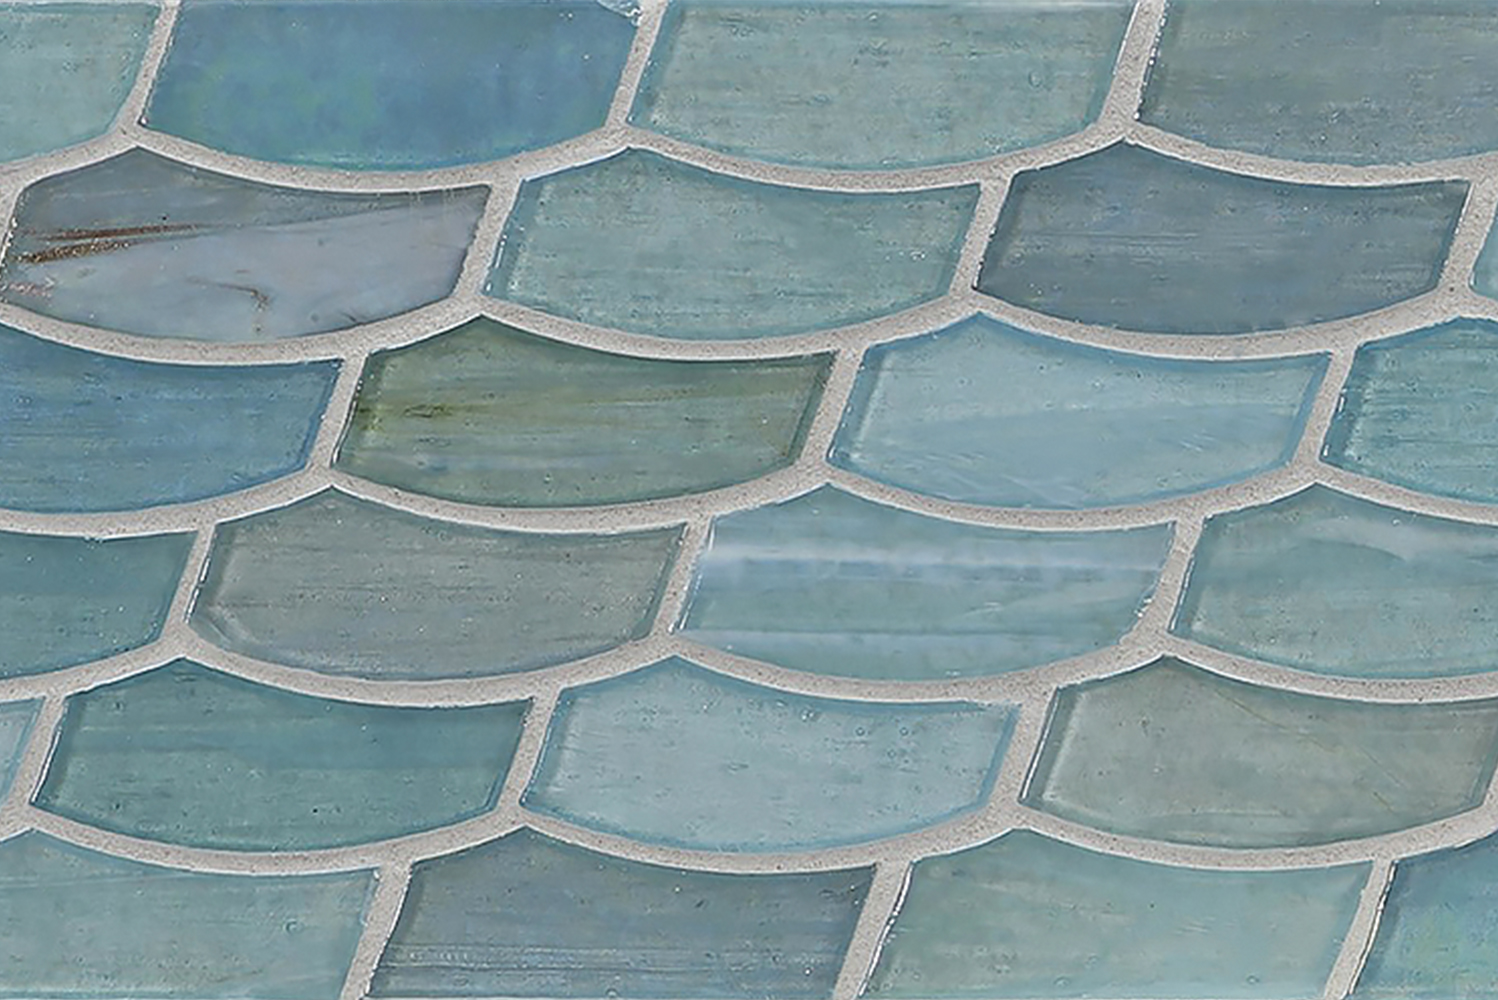 The new line takes 10 colors from Lunada Bay Tile's Agate and Luce collections, and then expanding their use to border application.